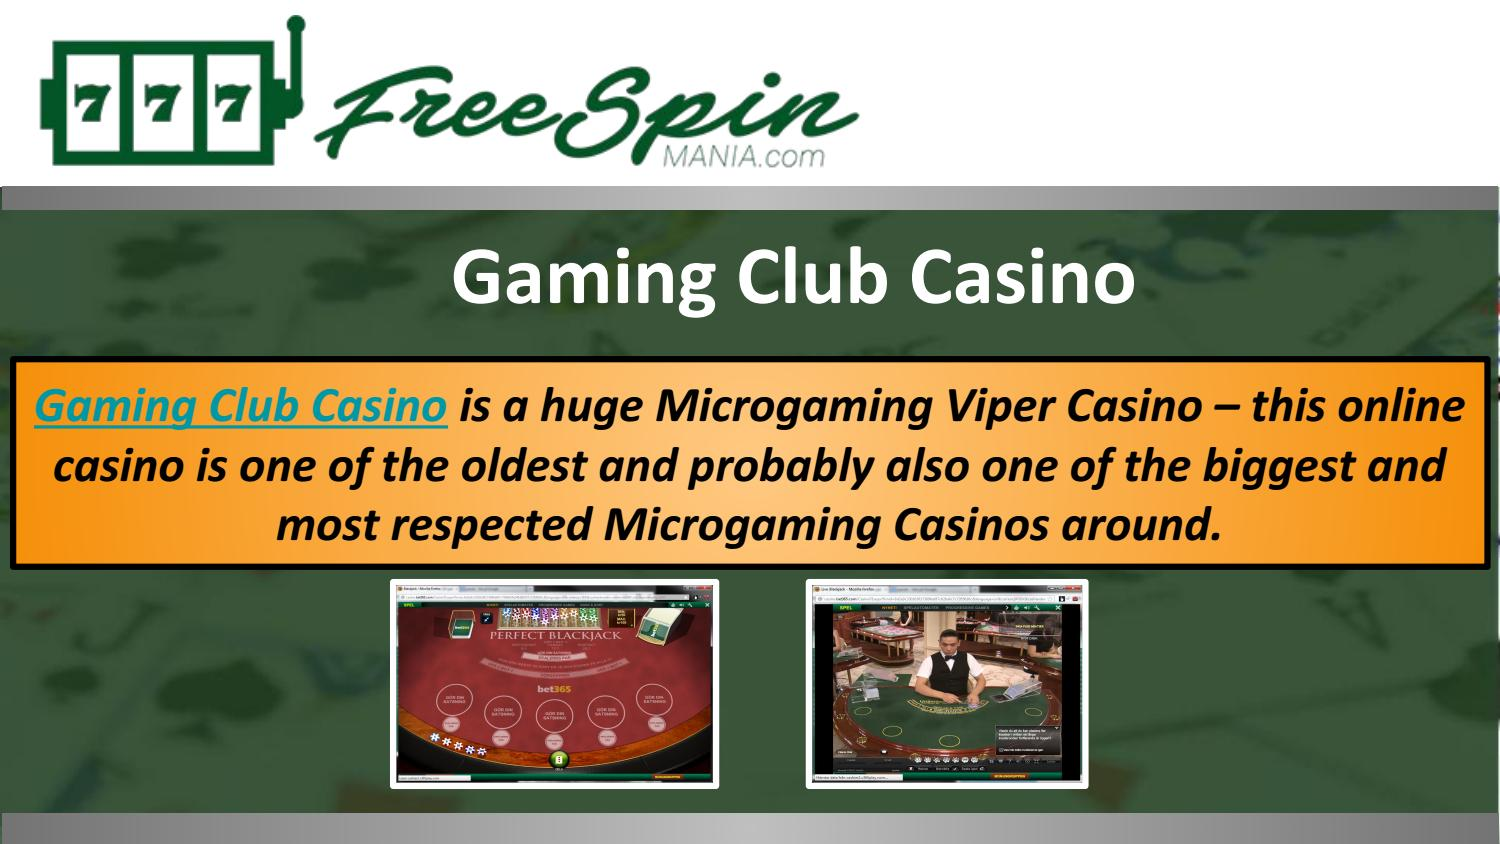 Best casino microgaming viper sands casino corp